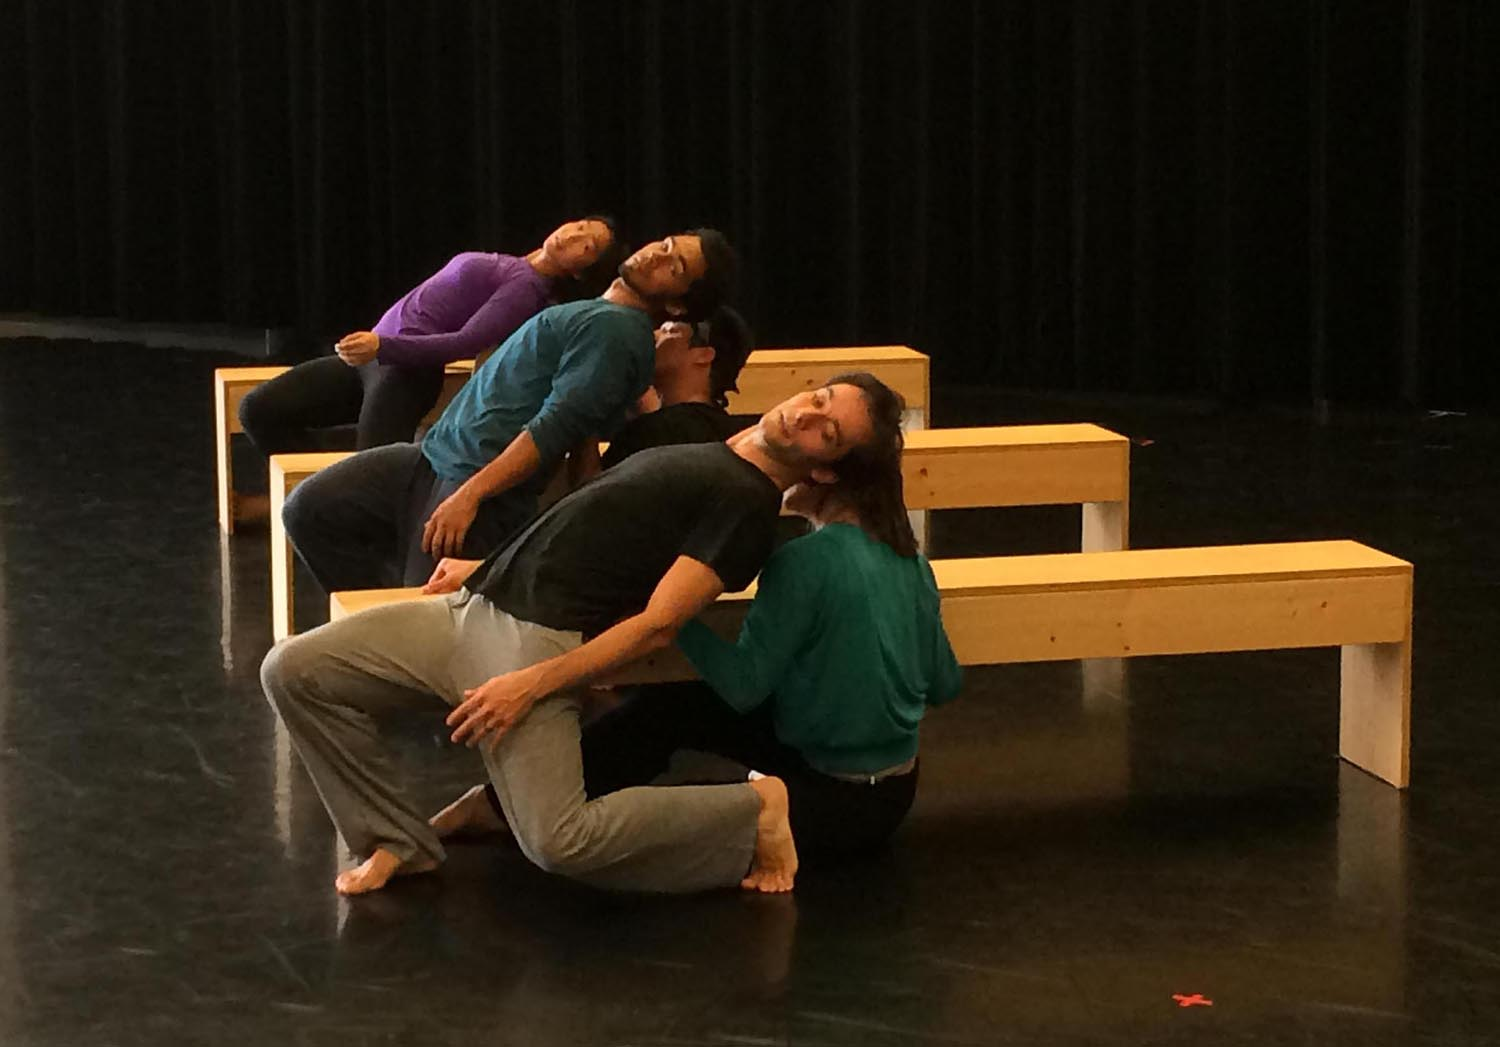 """Members of the UW Chamber Dance Company rehearse the piece """"To Have and Hold."""" Seen in front is Pablo Piantino."""